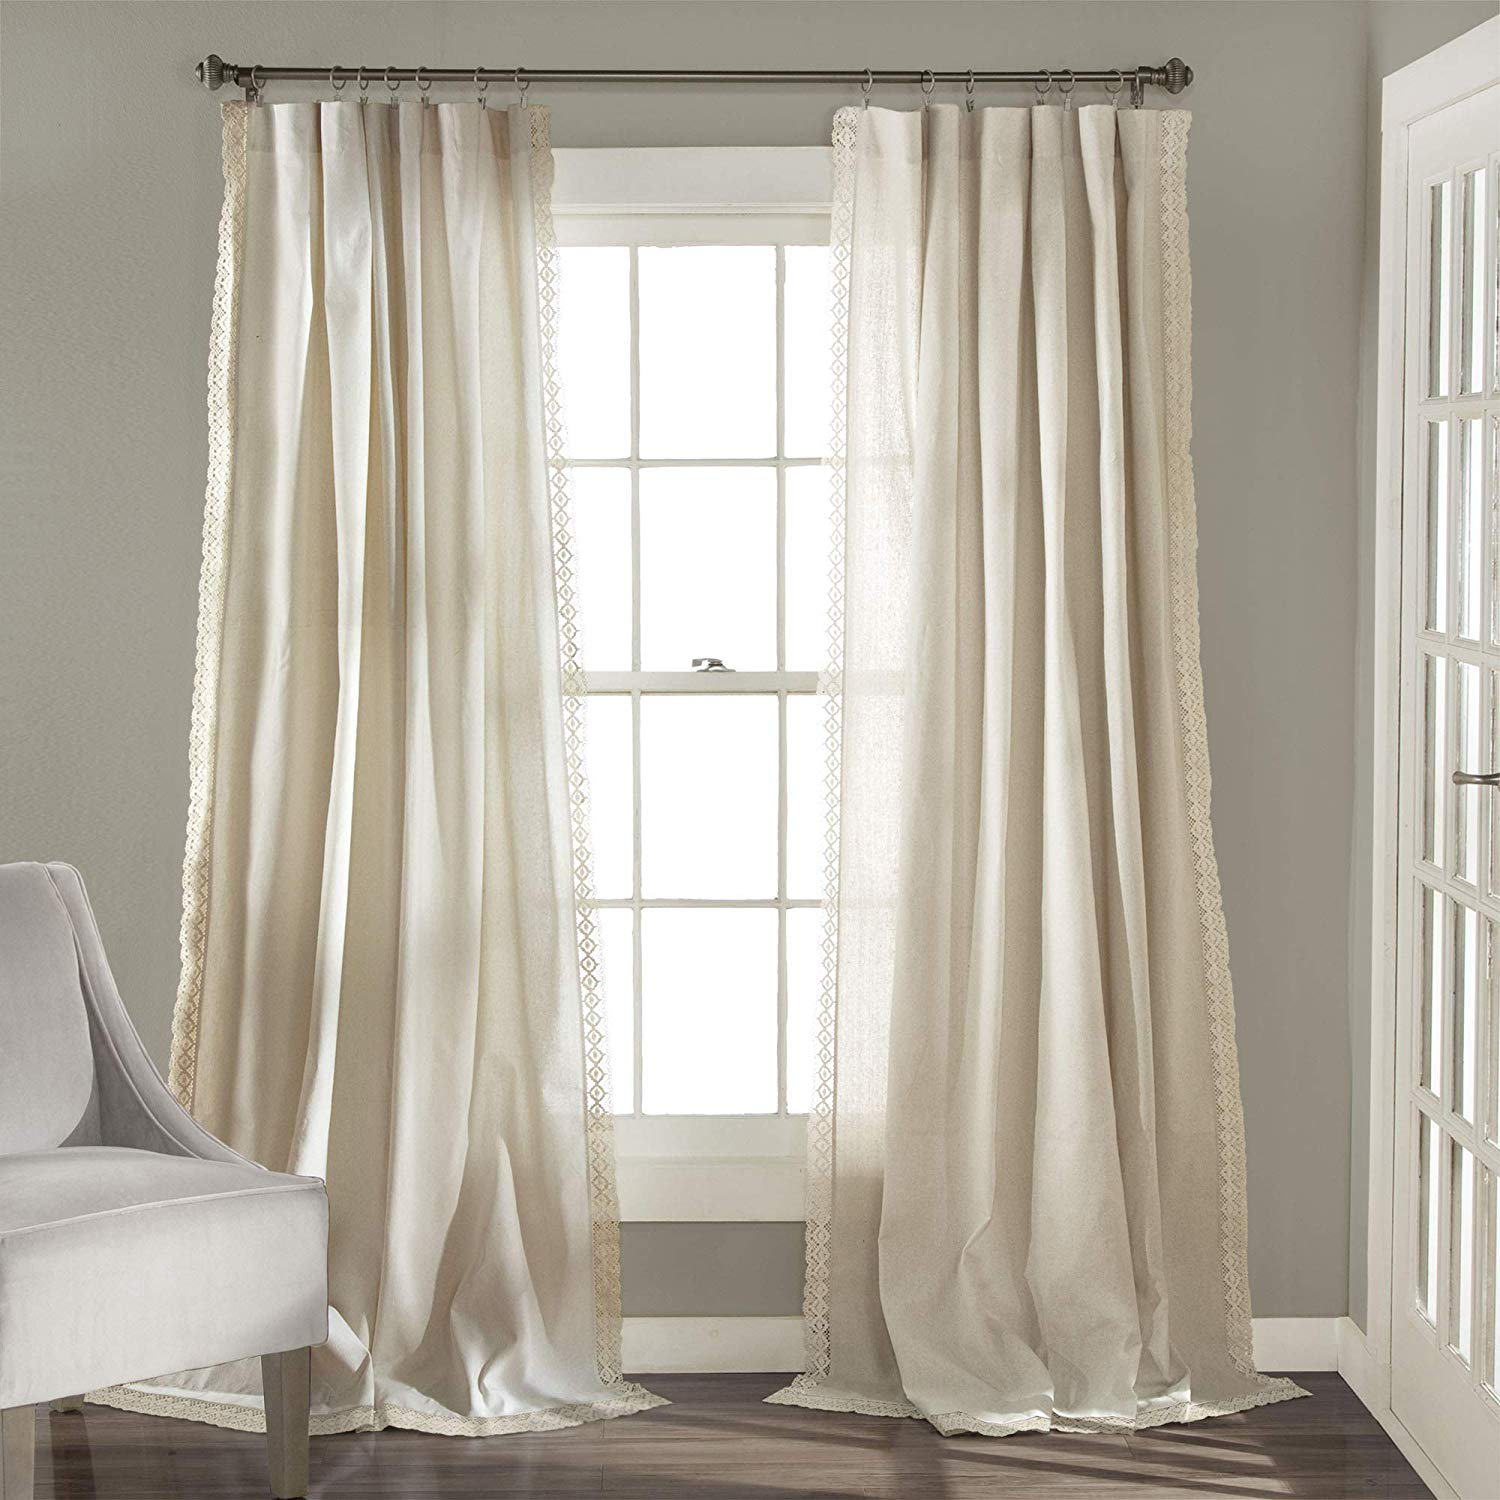 I just love the little detail trim that these Lush Decor Rosalie Window Rustic Farmhouse Style Curtains bring into a space, a perfect way to add character while staying in a neutral color palette.